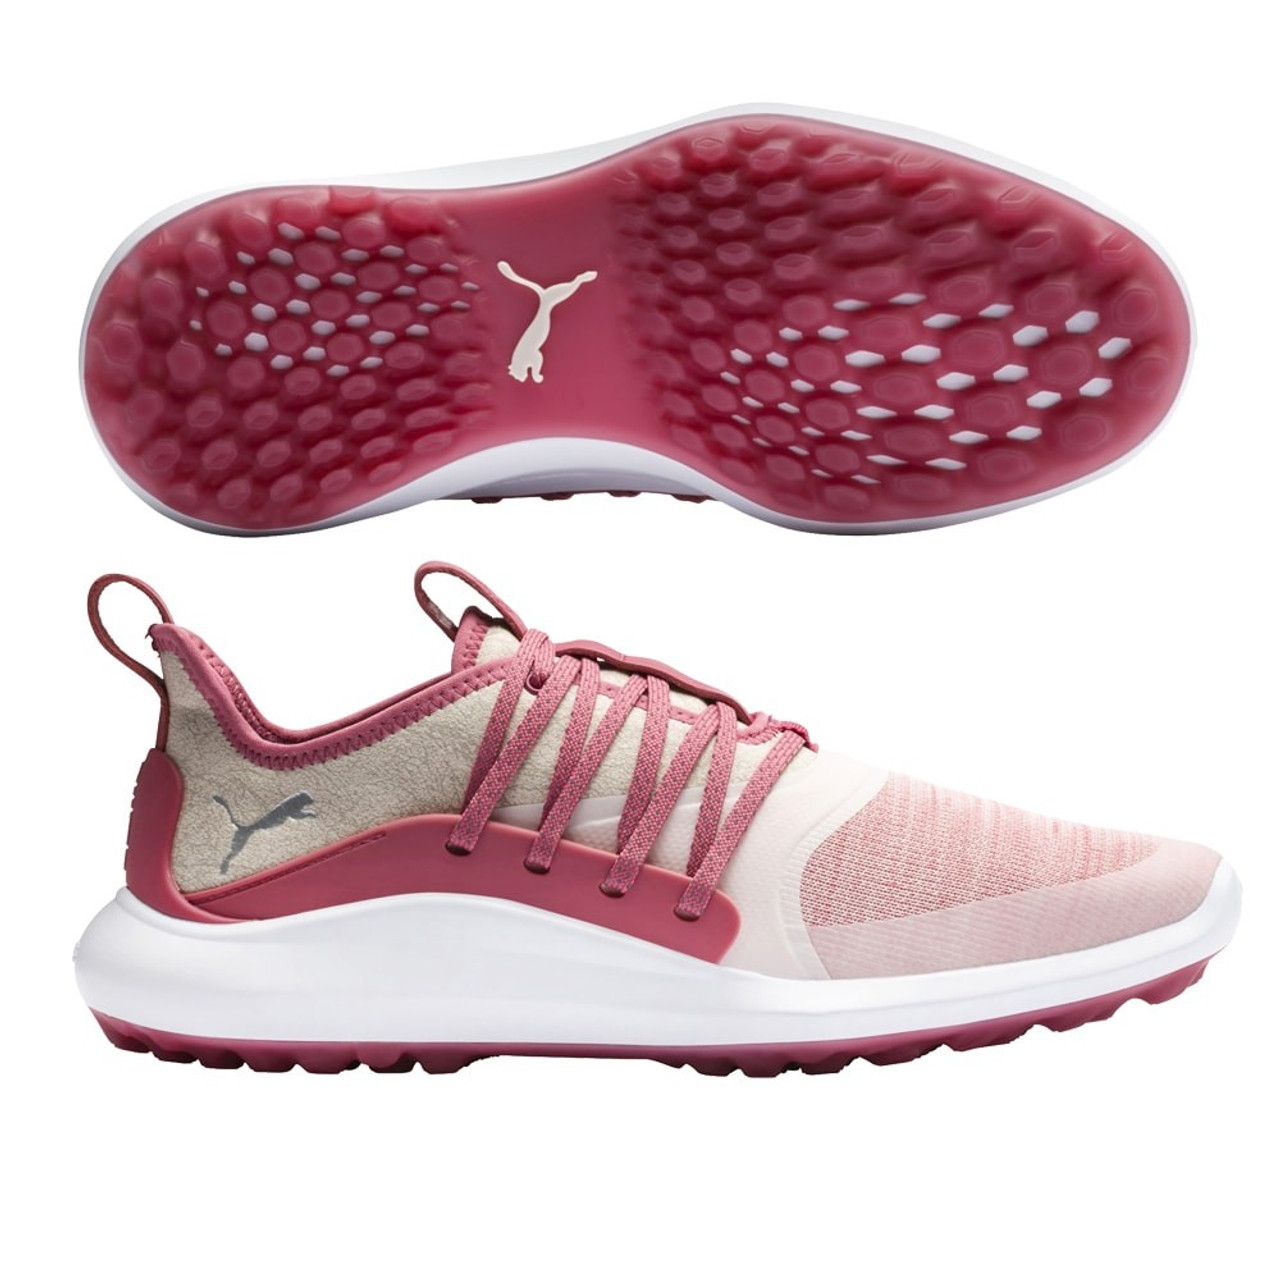 Puma Ignite Nxt Solelace Women S Golf Shoes